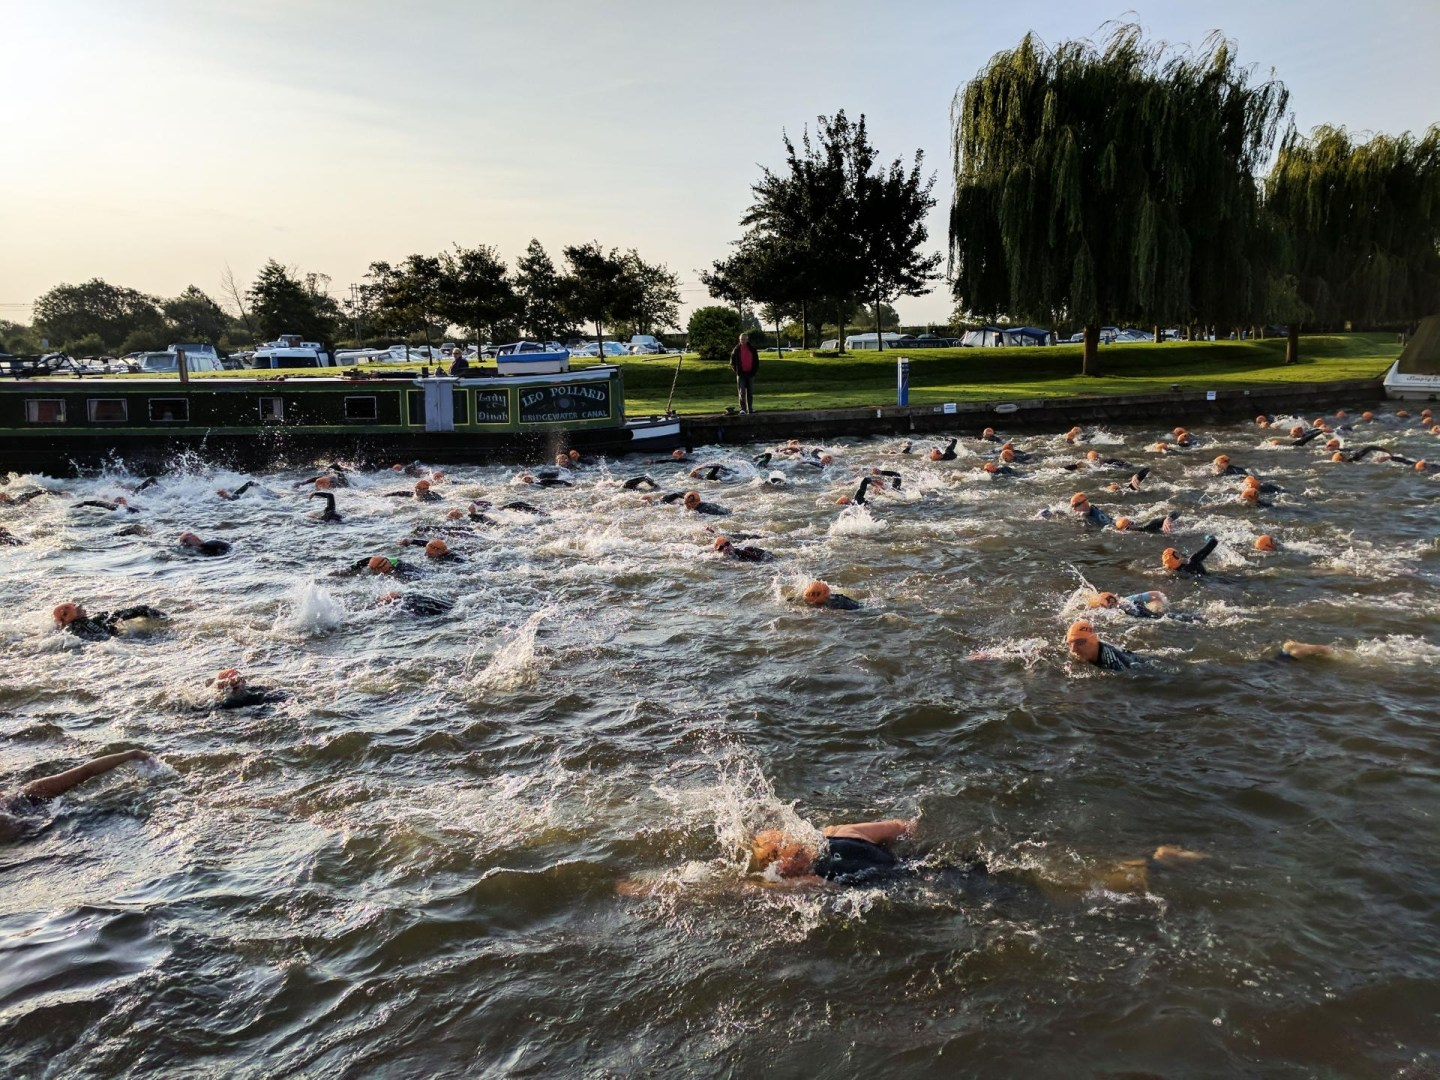 Fear of open water swimming